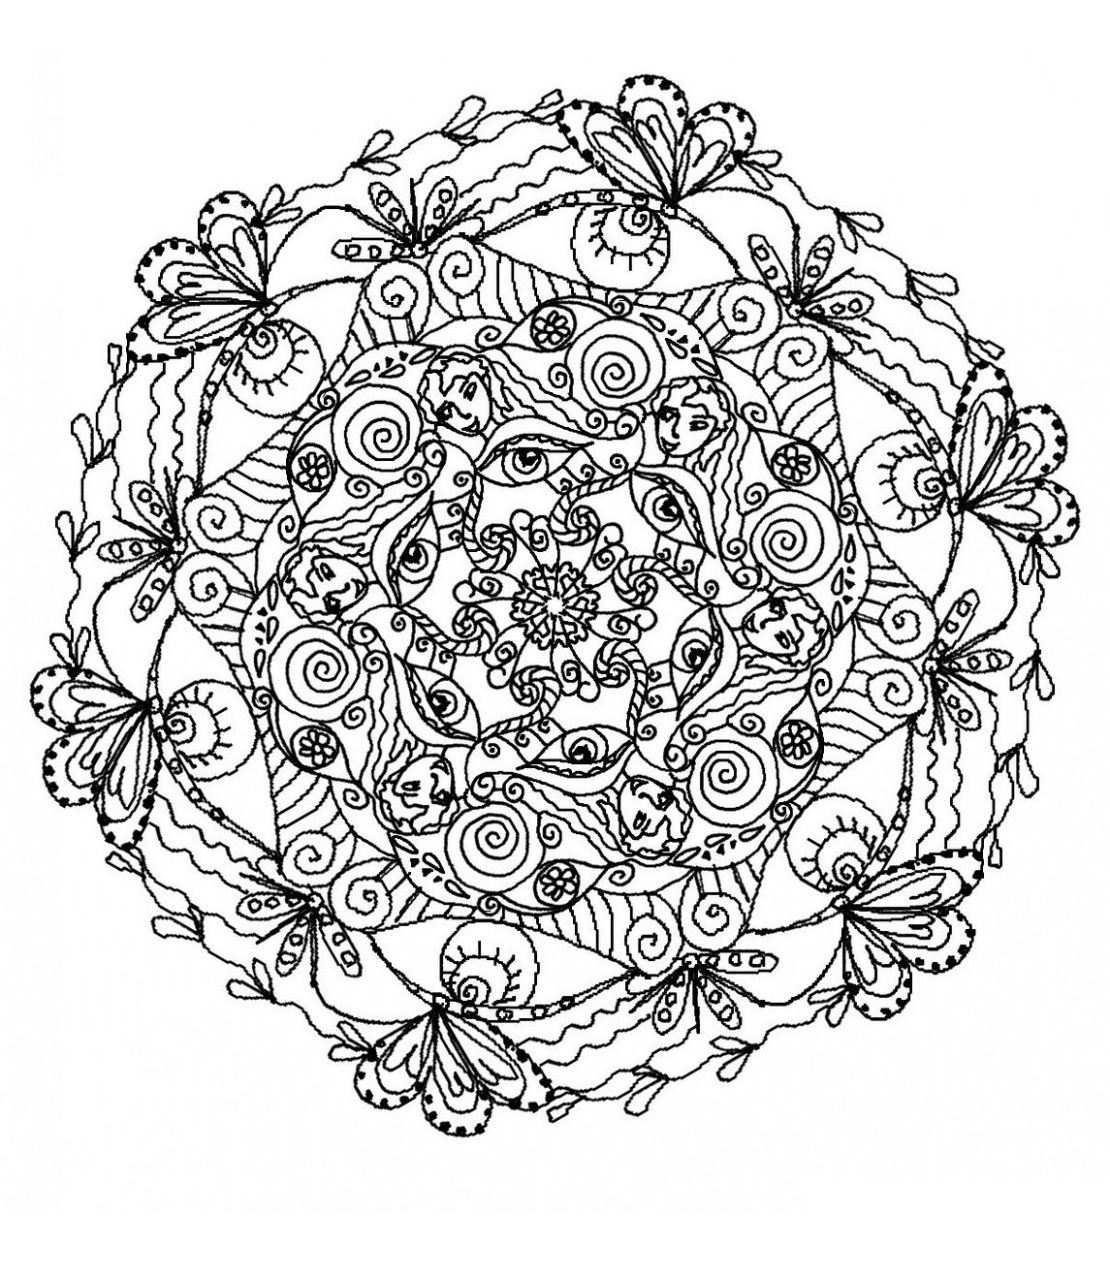 Mystical mandala coloring pages - Free Coloring Page Coloring Mandala Difficult 5 Plants And Natural